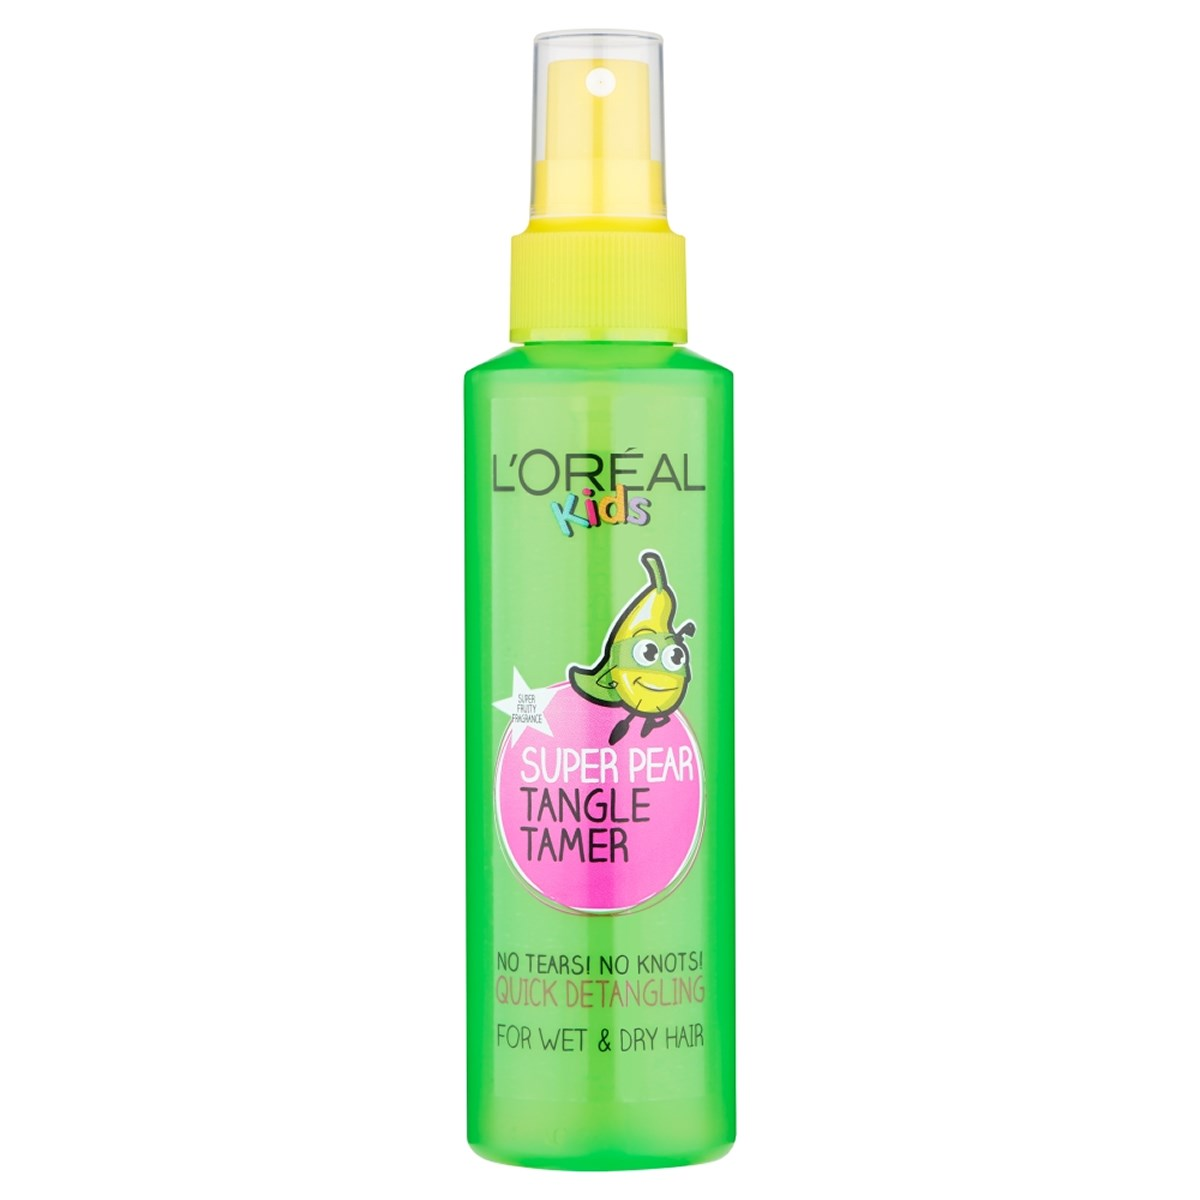 L'Oreal Paris Kids Super Pear Tangle Tamer